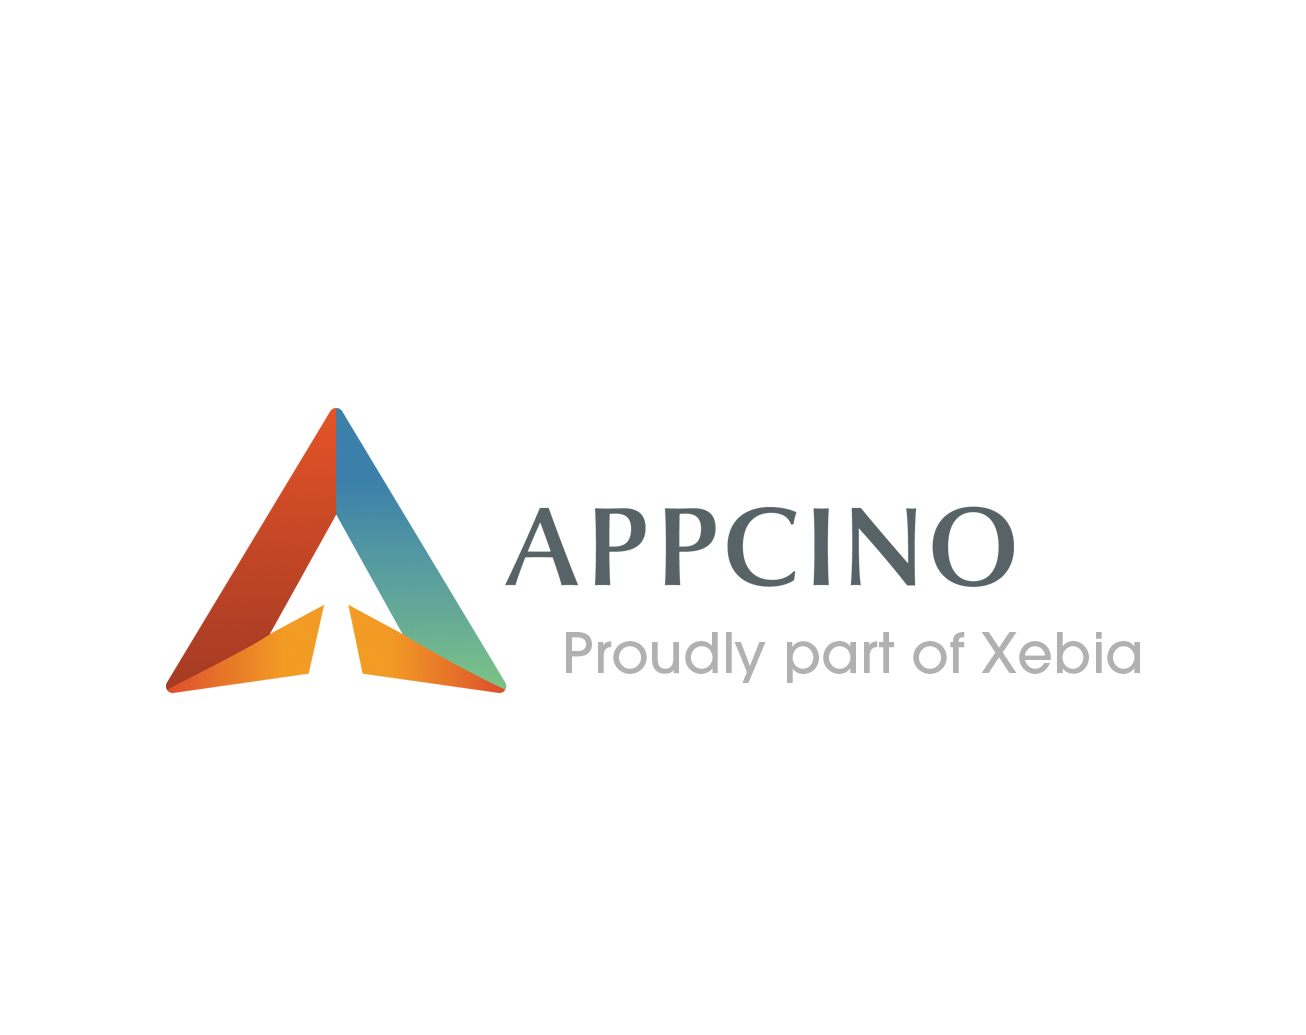 Appcino logo Proudly part of Xebia RGB